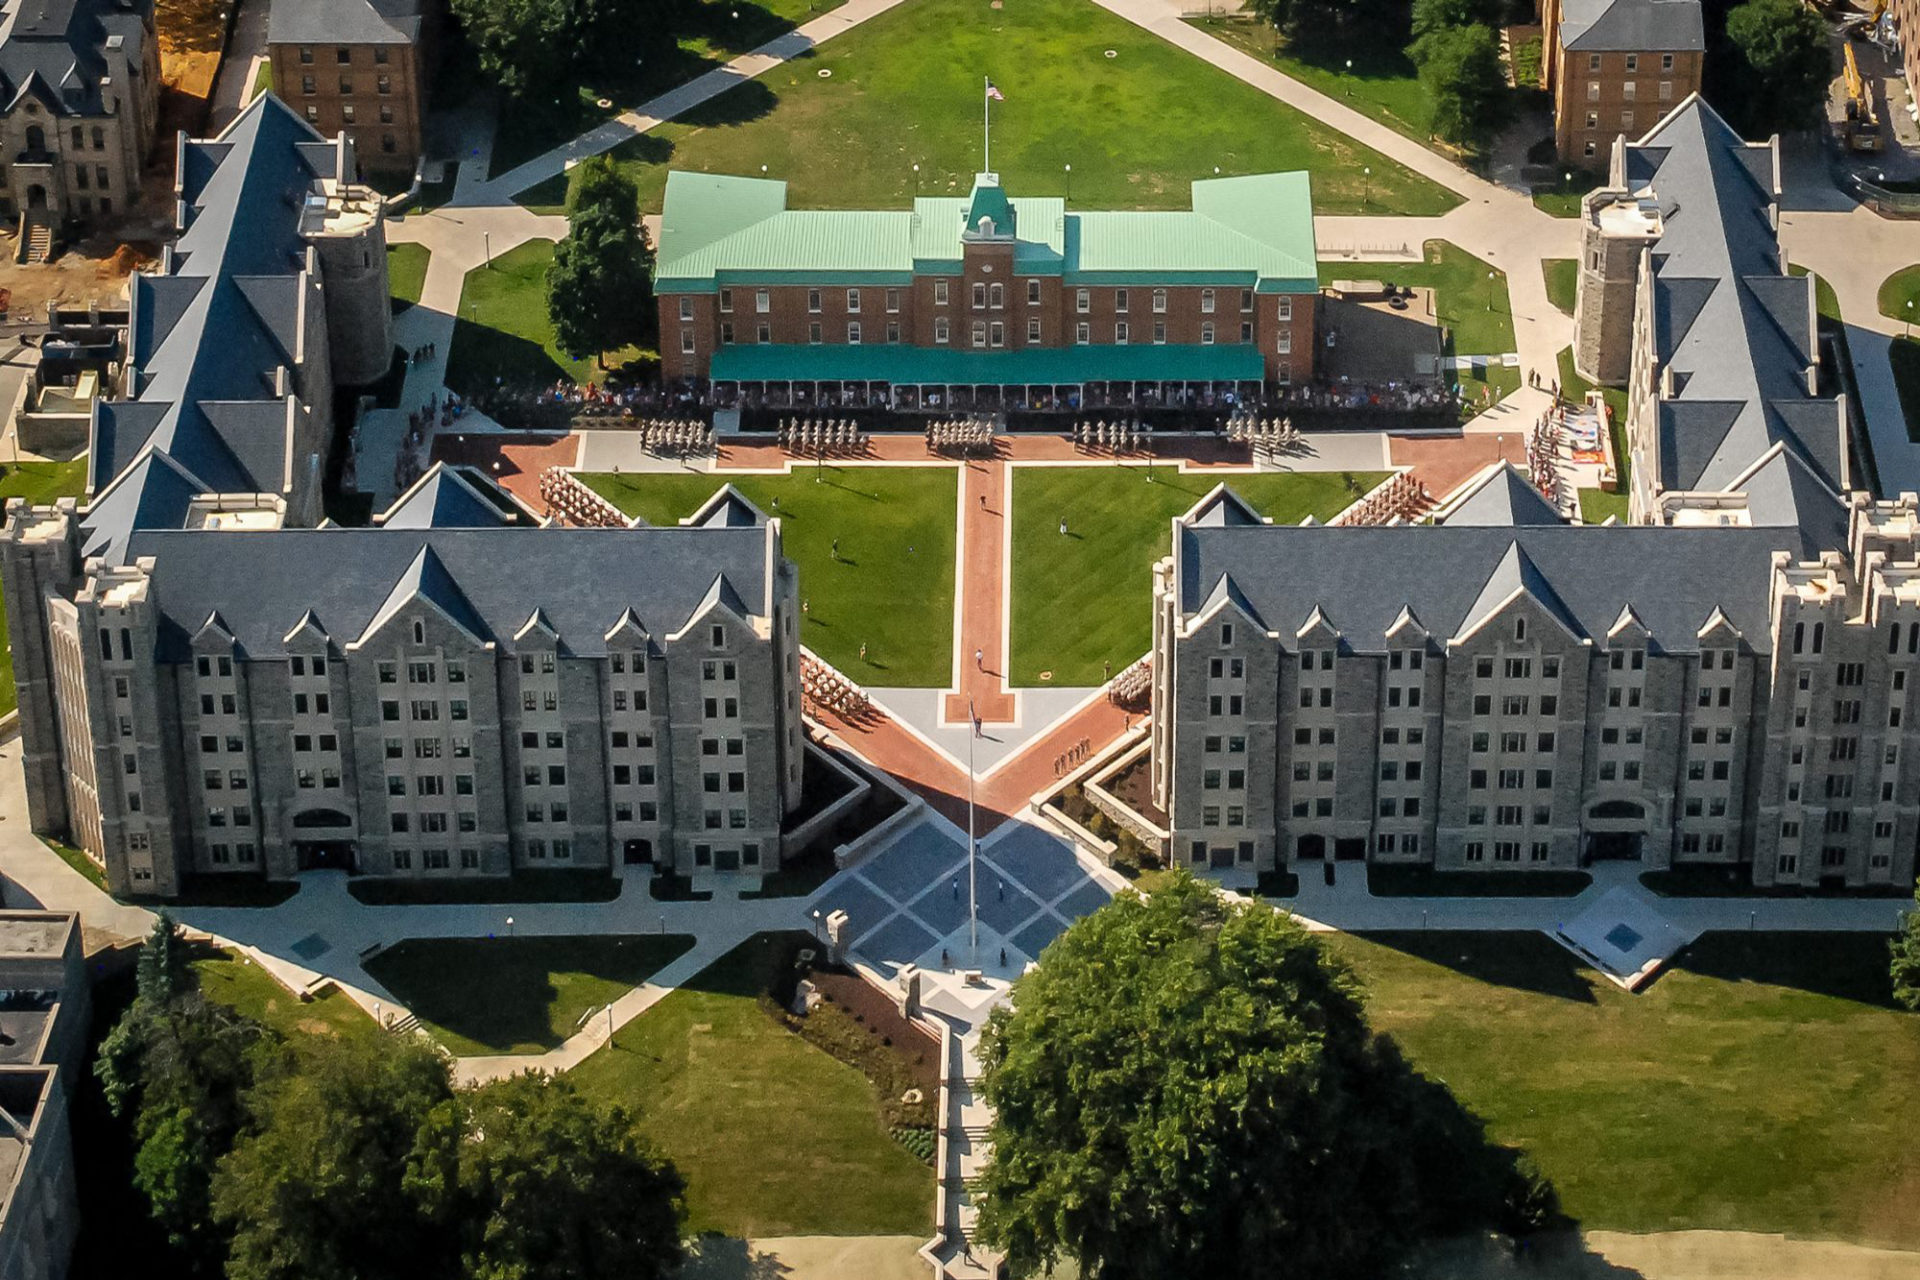 Aerial view of Pearson Hall and New Cadet Hall at Virginia Tech in Blacksburg, VA; Architect and engineer: Clark Nexsen